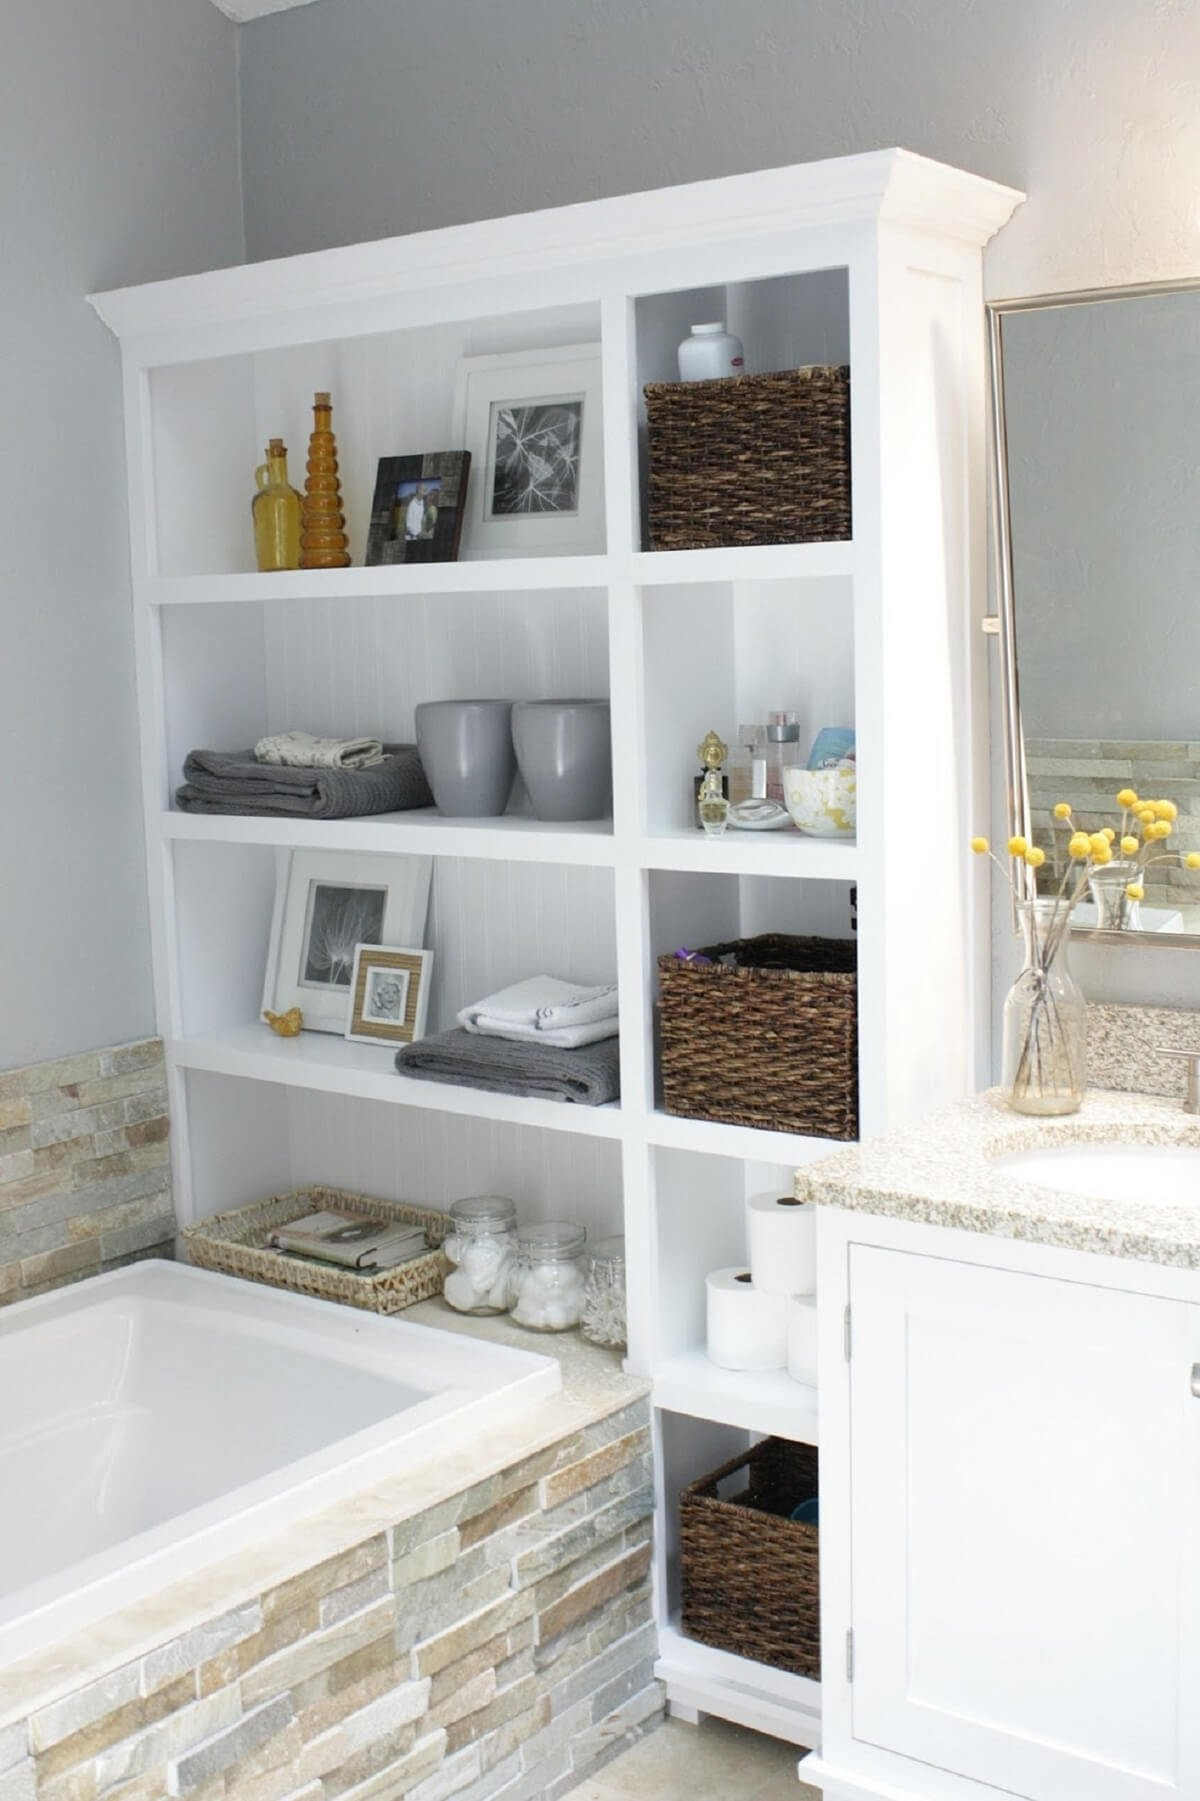 very original bathroom storage ideas — stylid homes